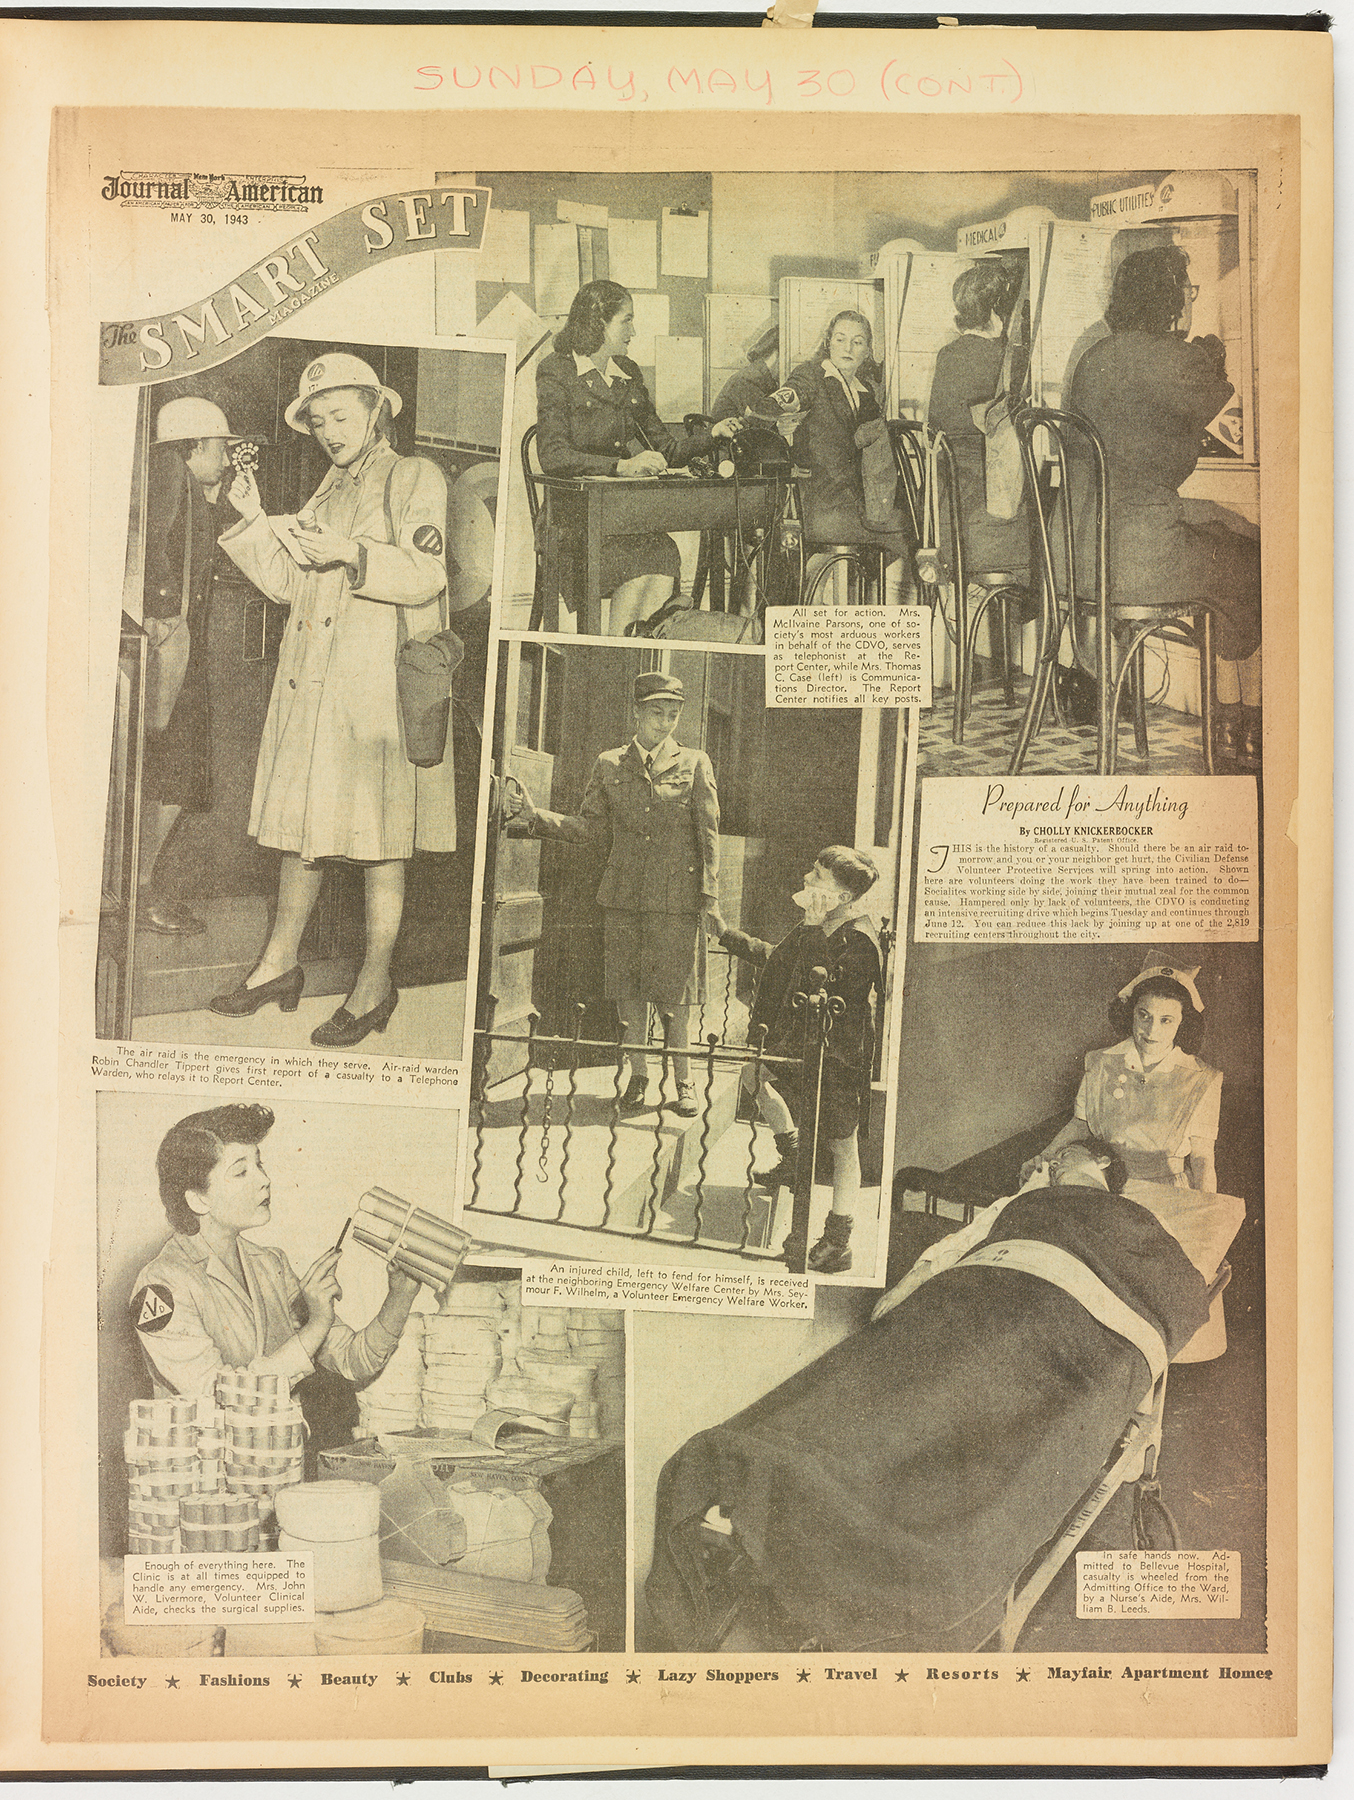 """Prepare for Anything"" A photo spread from the Sunday before the Volunteer Drive kick off.  Journal-American , May 30, 1943. Mayor La Guardia Papers, NYC Municipal Archives."